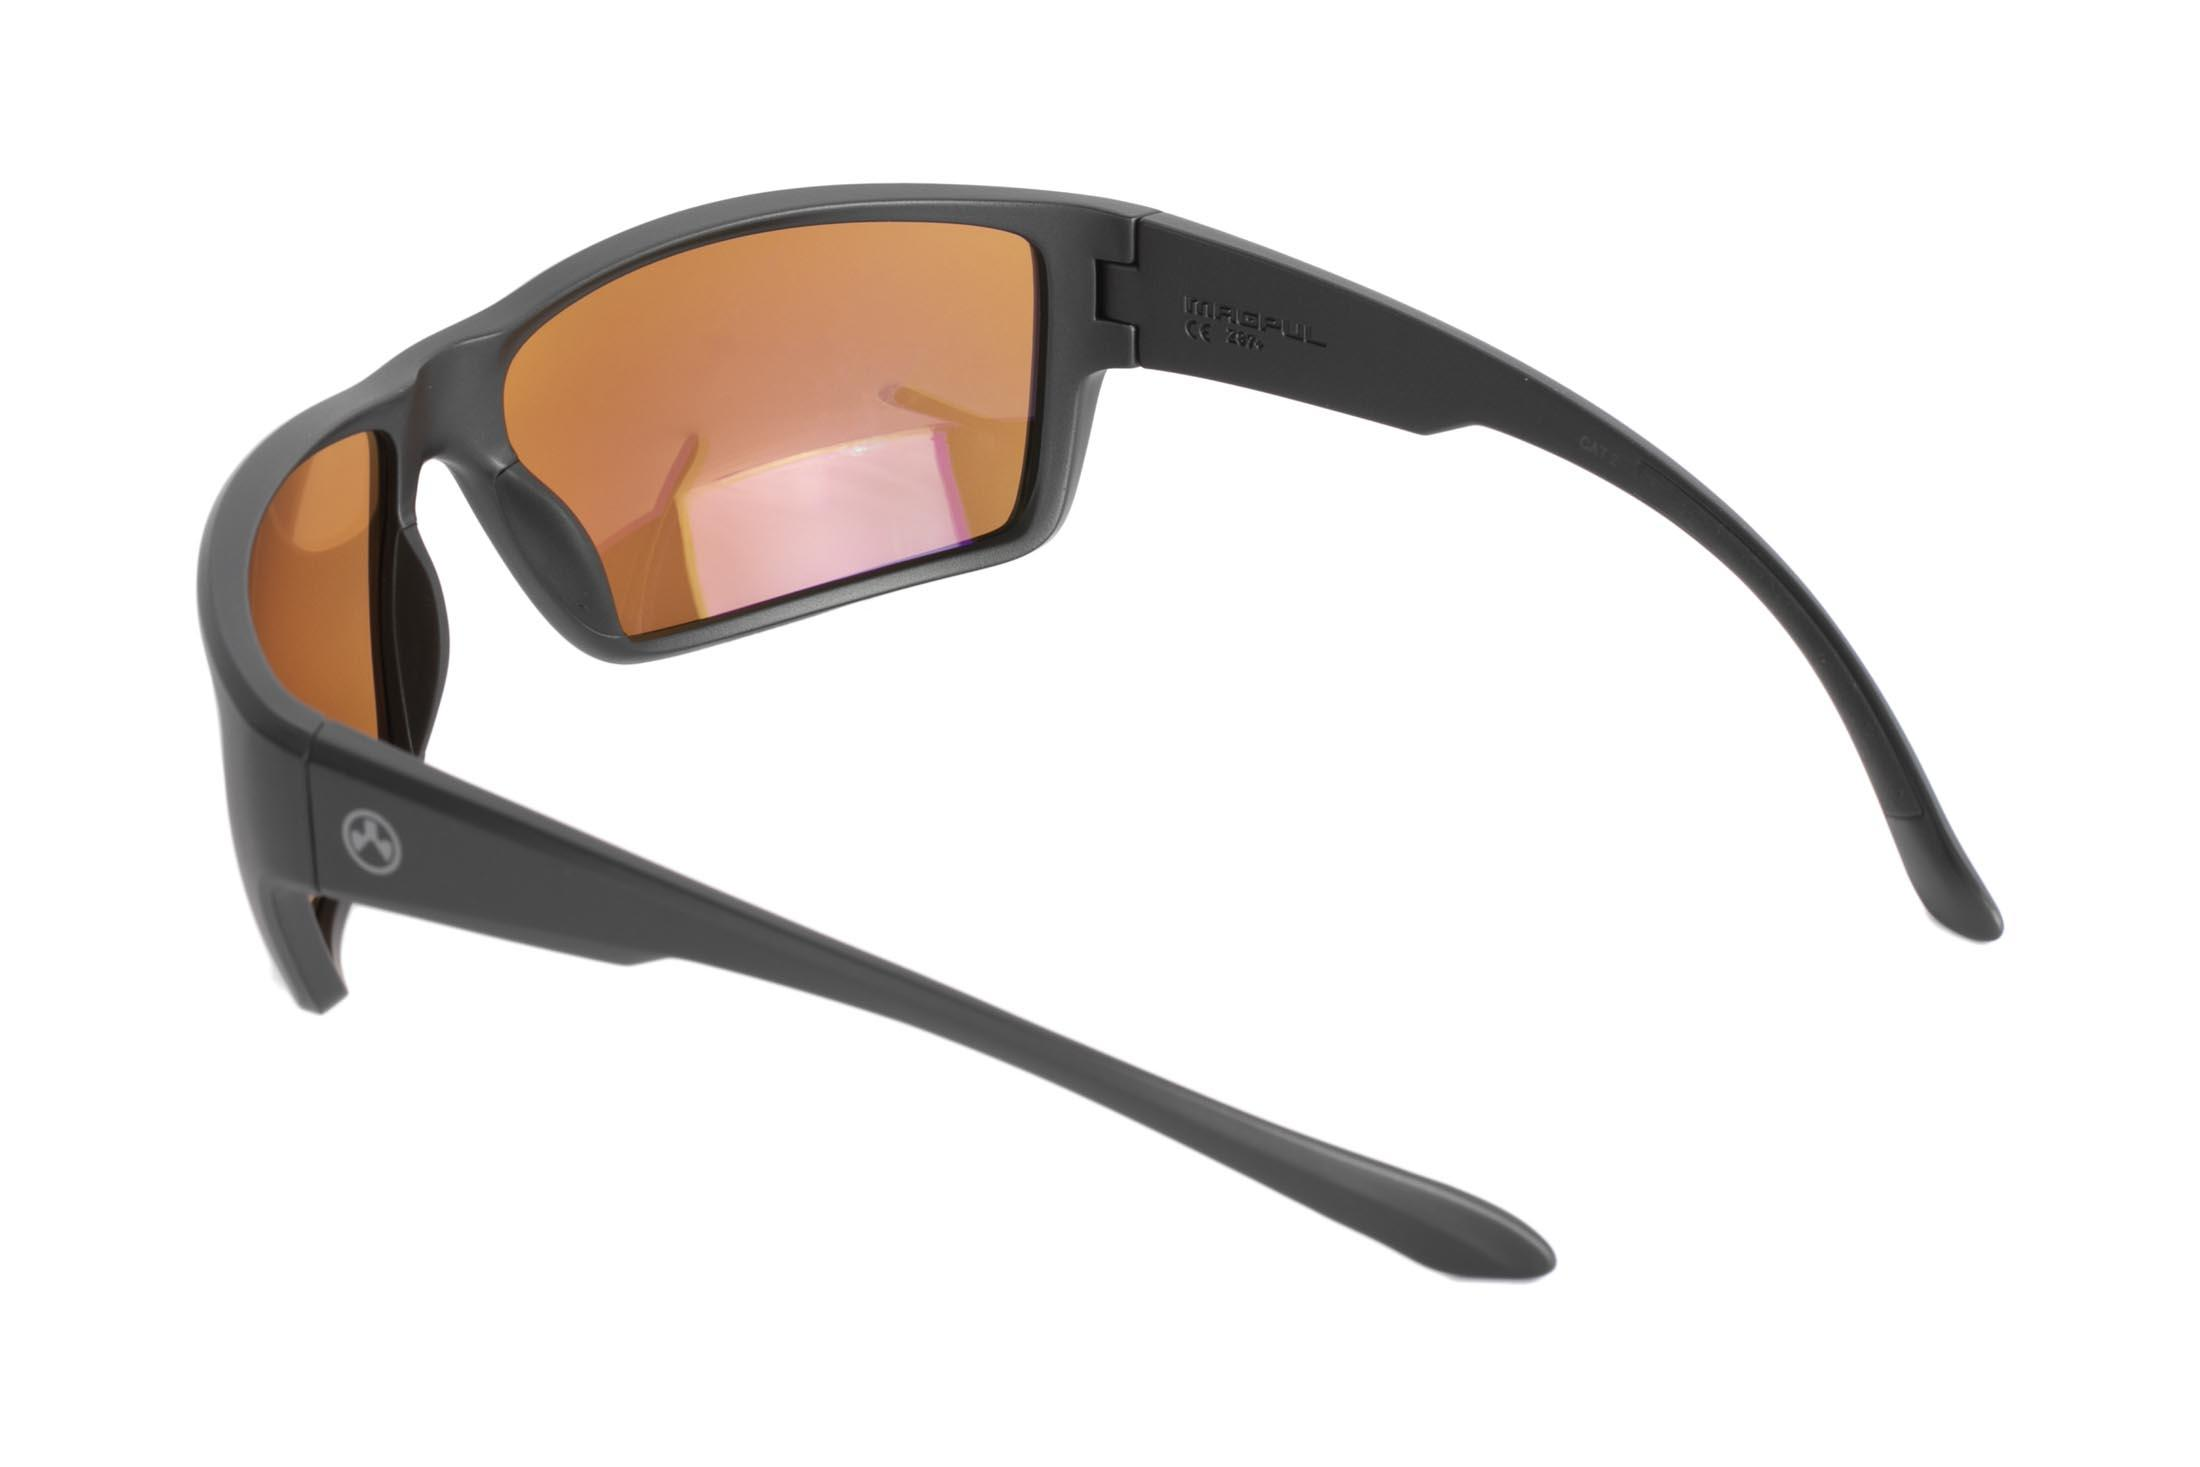 d57779466a ... Magpul Terrain black frame eye protection with polarized rose blue  lenses are designed to complement ...